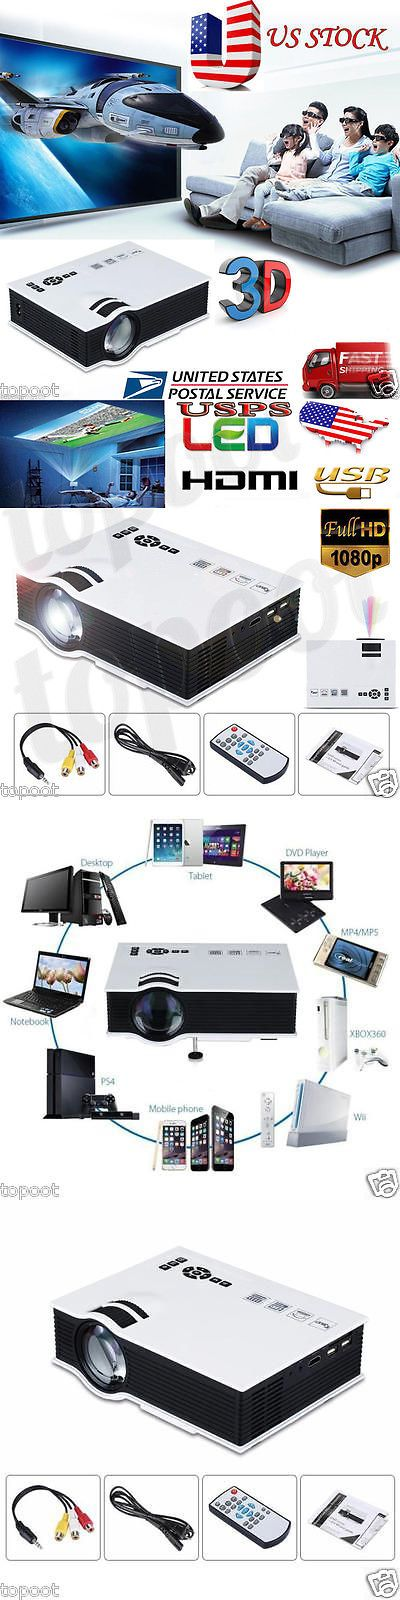 Home Theater Projectors: 7000 Lumens Hd 1080P Home Theater Projector 3D Led Portable Sd Hdmi Vga Usb Us -> BUY IT NOW ONLY: $68.98 on eBay!